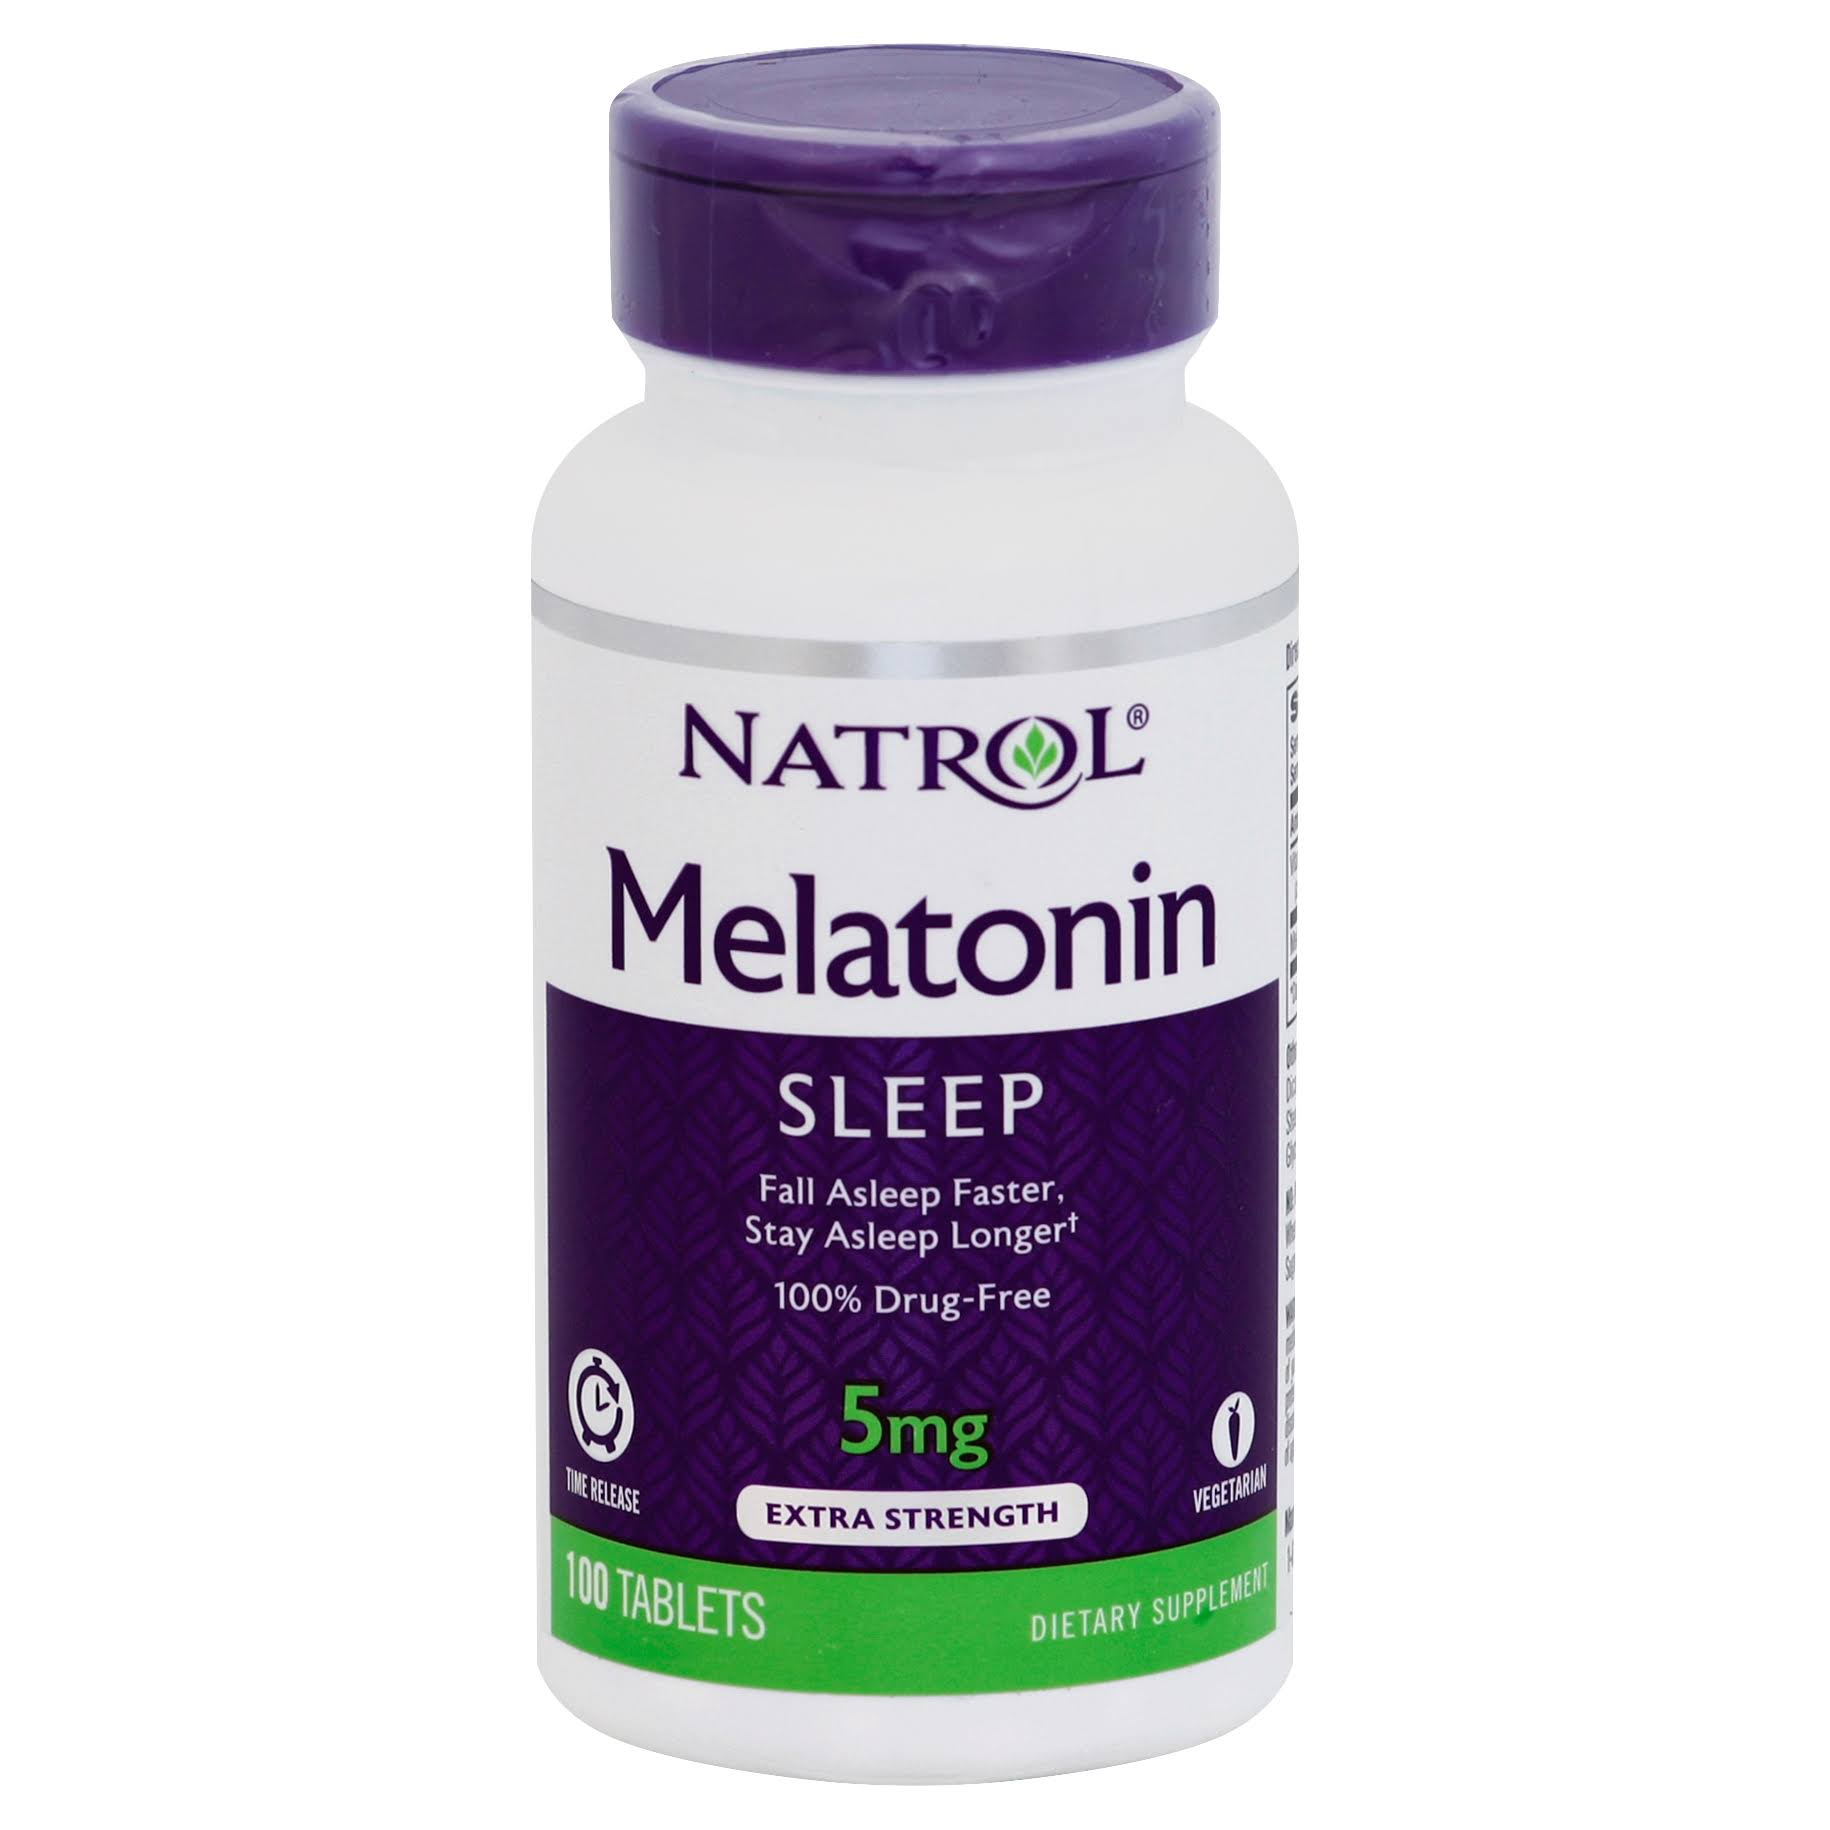 Natrol Melatonin 5mg Time Release - 100 Tablets